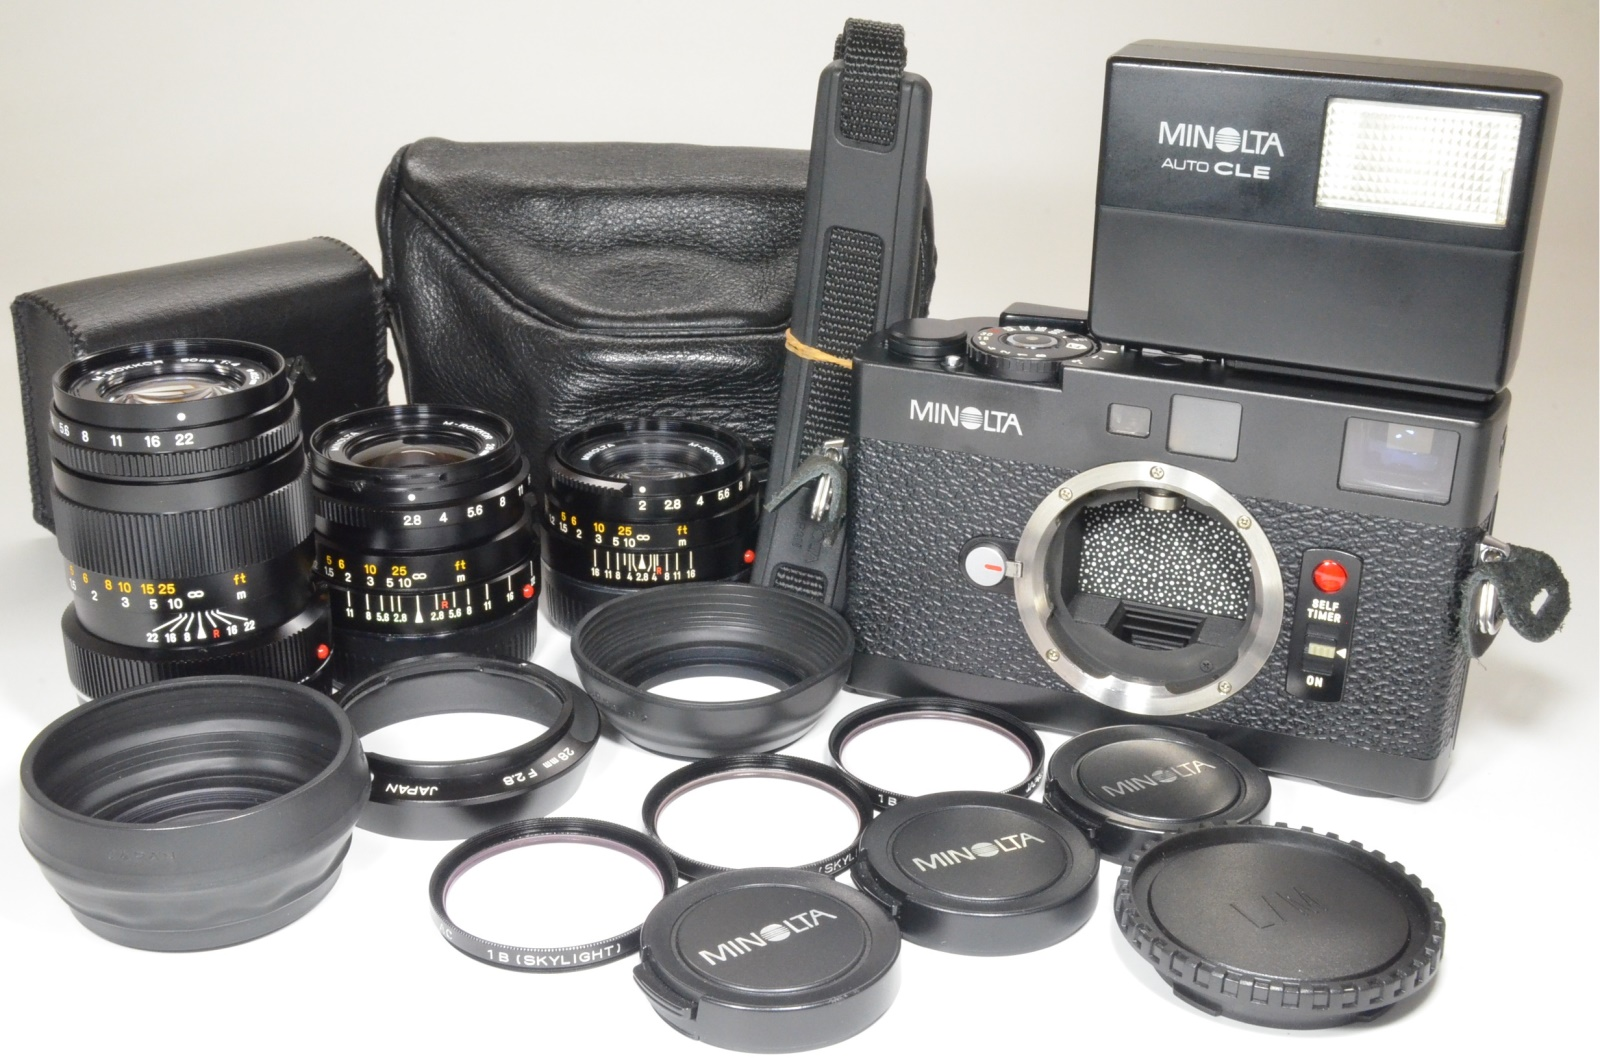 minolta cle 35mm film camera with m-rokkor 40mm f2, 28mm f2.8, 90mm f4 and case